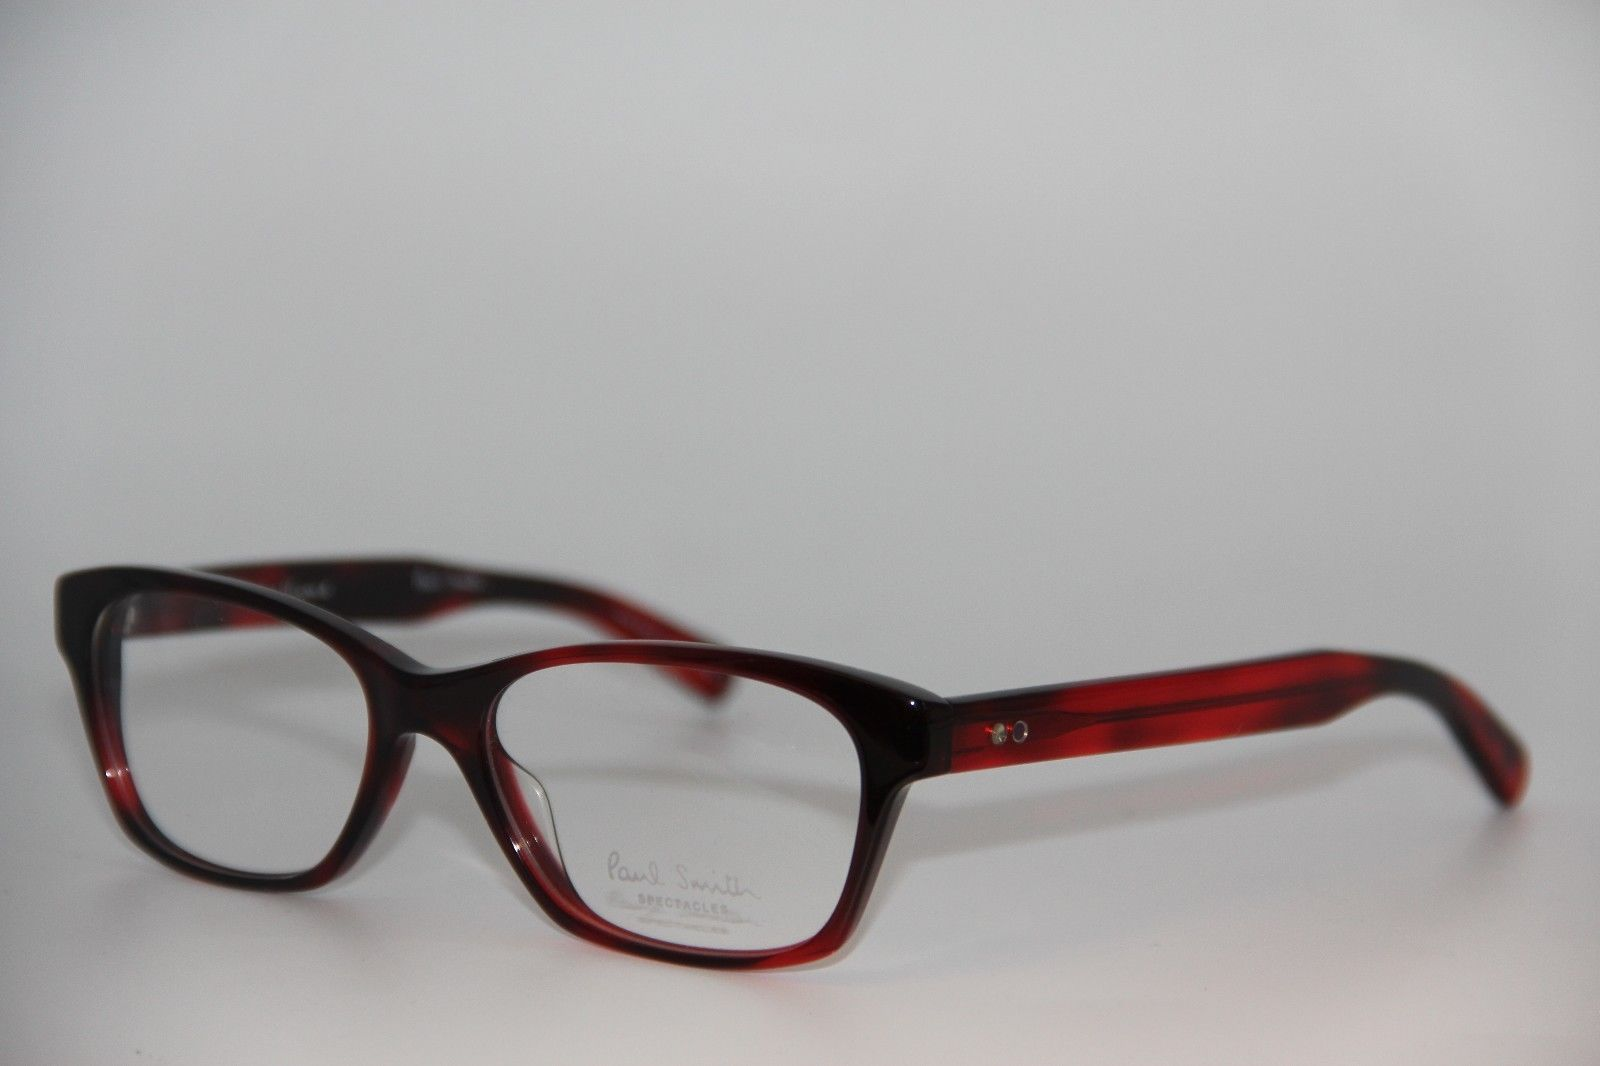 2631eb394c New Paul Smith Pm 8056 1176 PS-423 Havana and 50 similar items